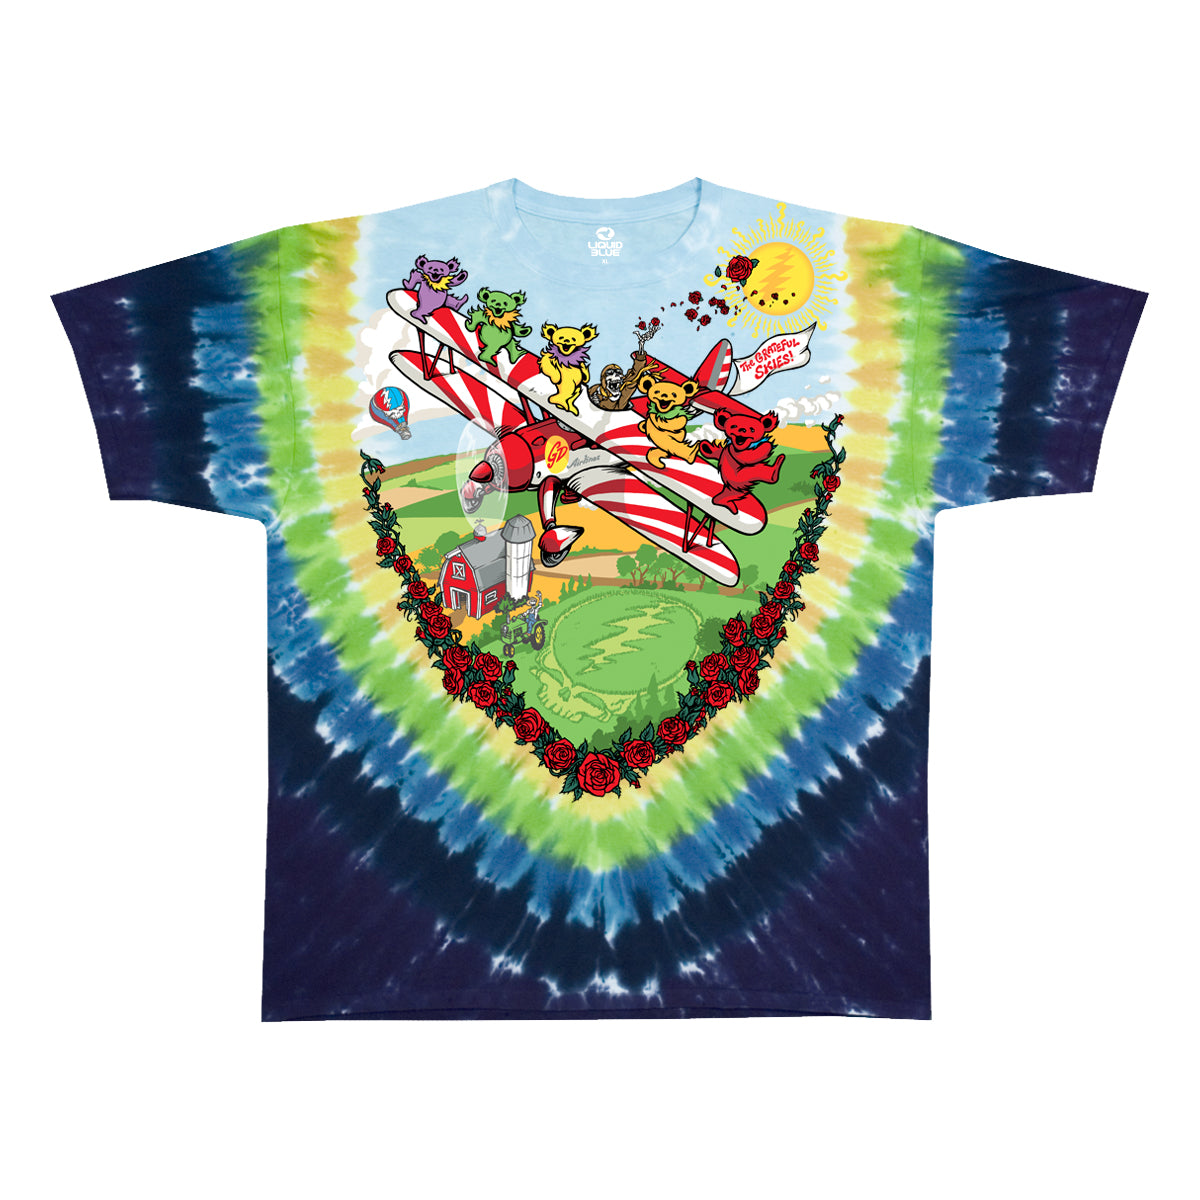 Grateful Dead -Bi-Plane Bears - Short Sleeve Tie Dye T Shirt